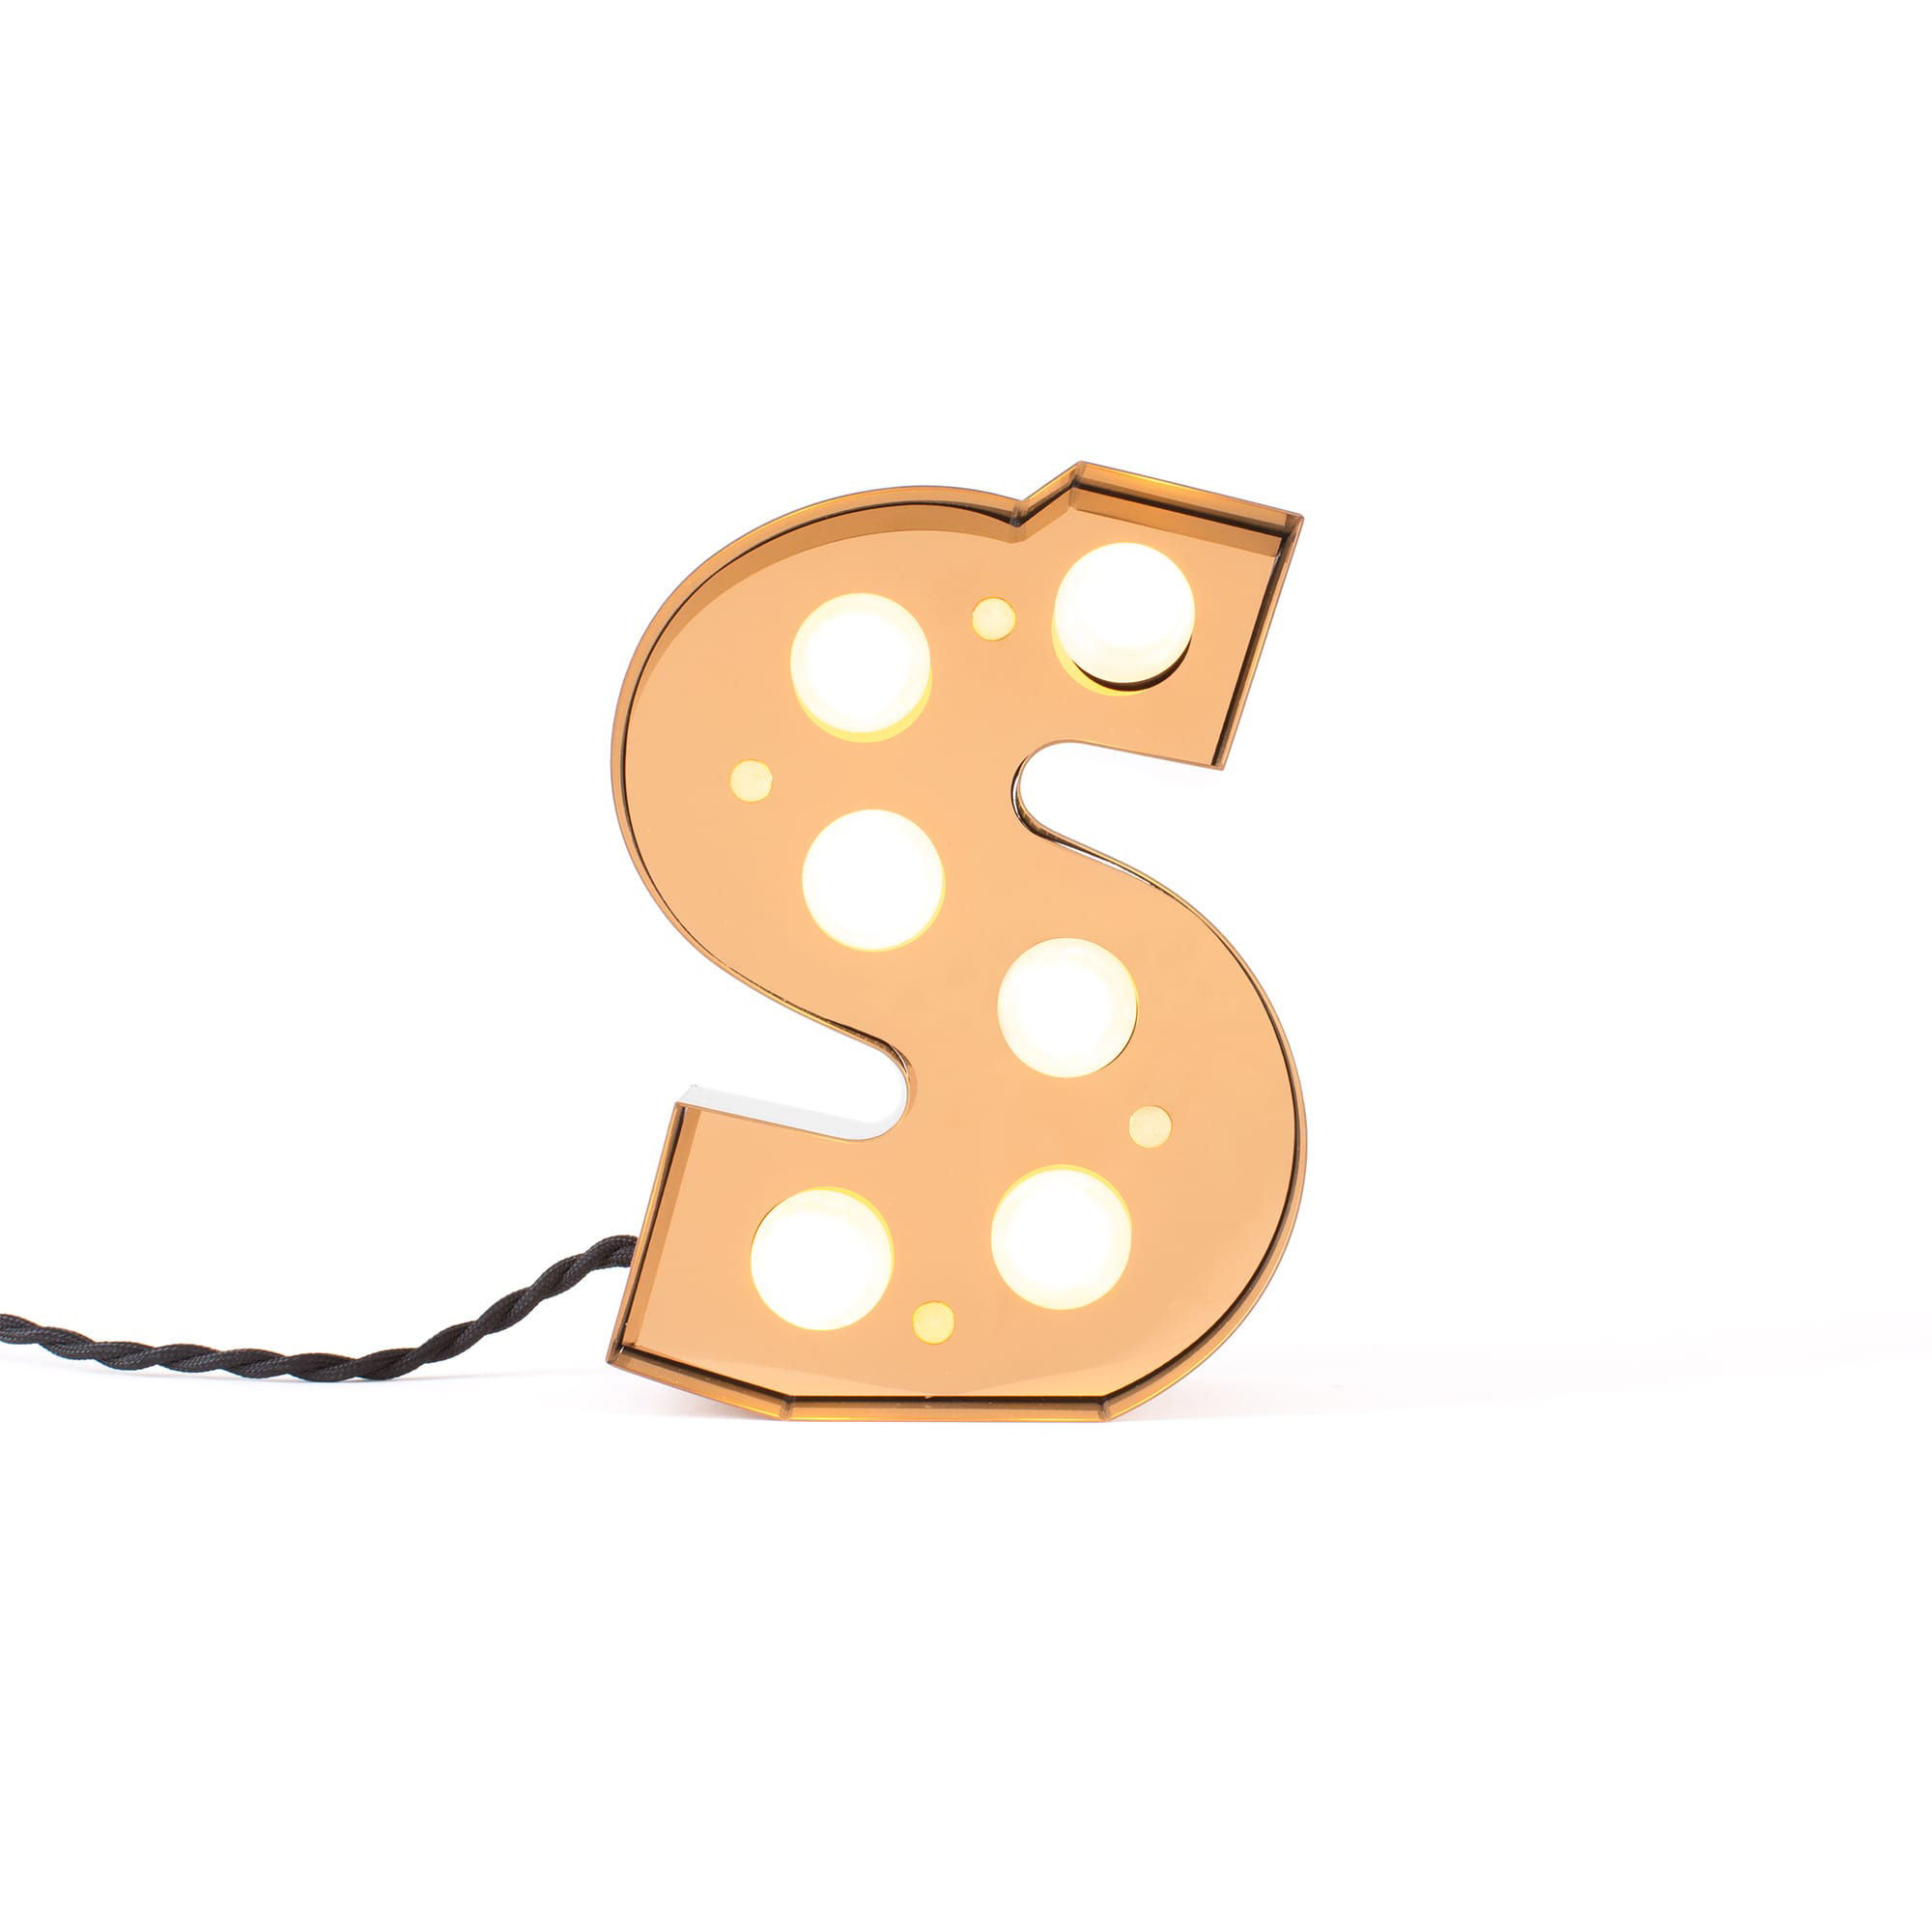 Decoration - Children's Home Accessories - Caractère Table lamp - / Wall light - Letter S - H 20 cm by Seletti - S - Lacquered metal